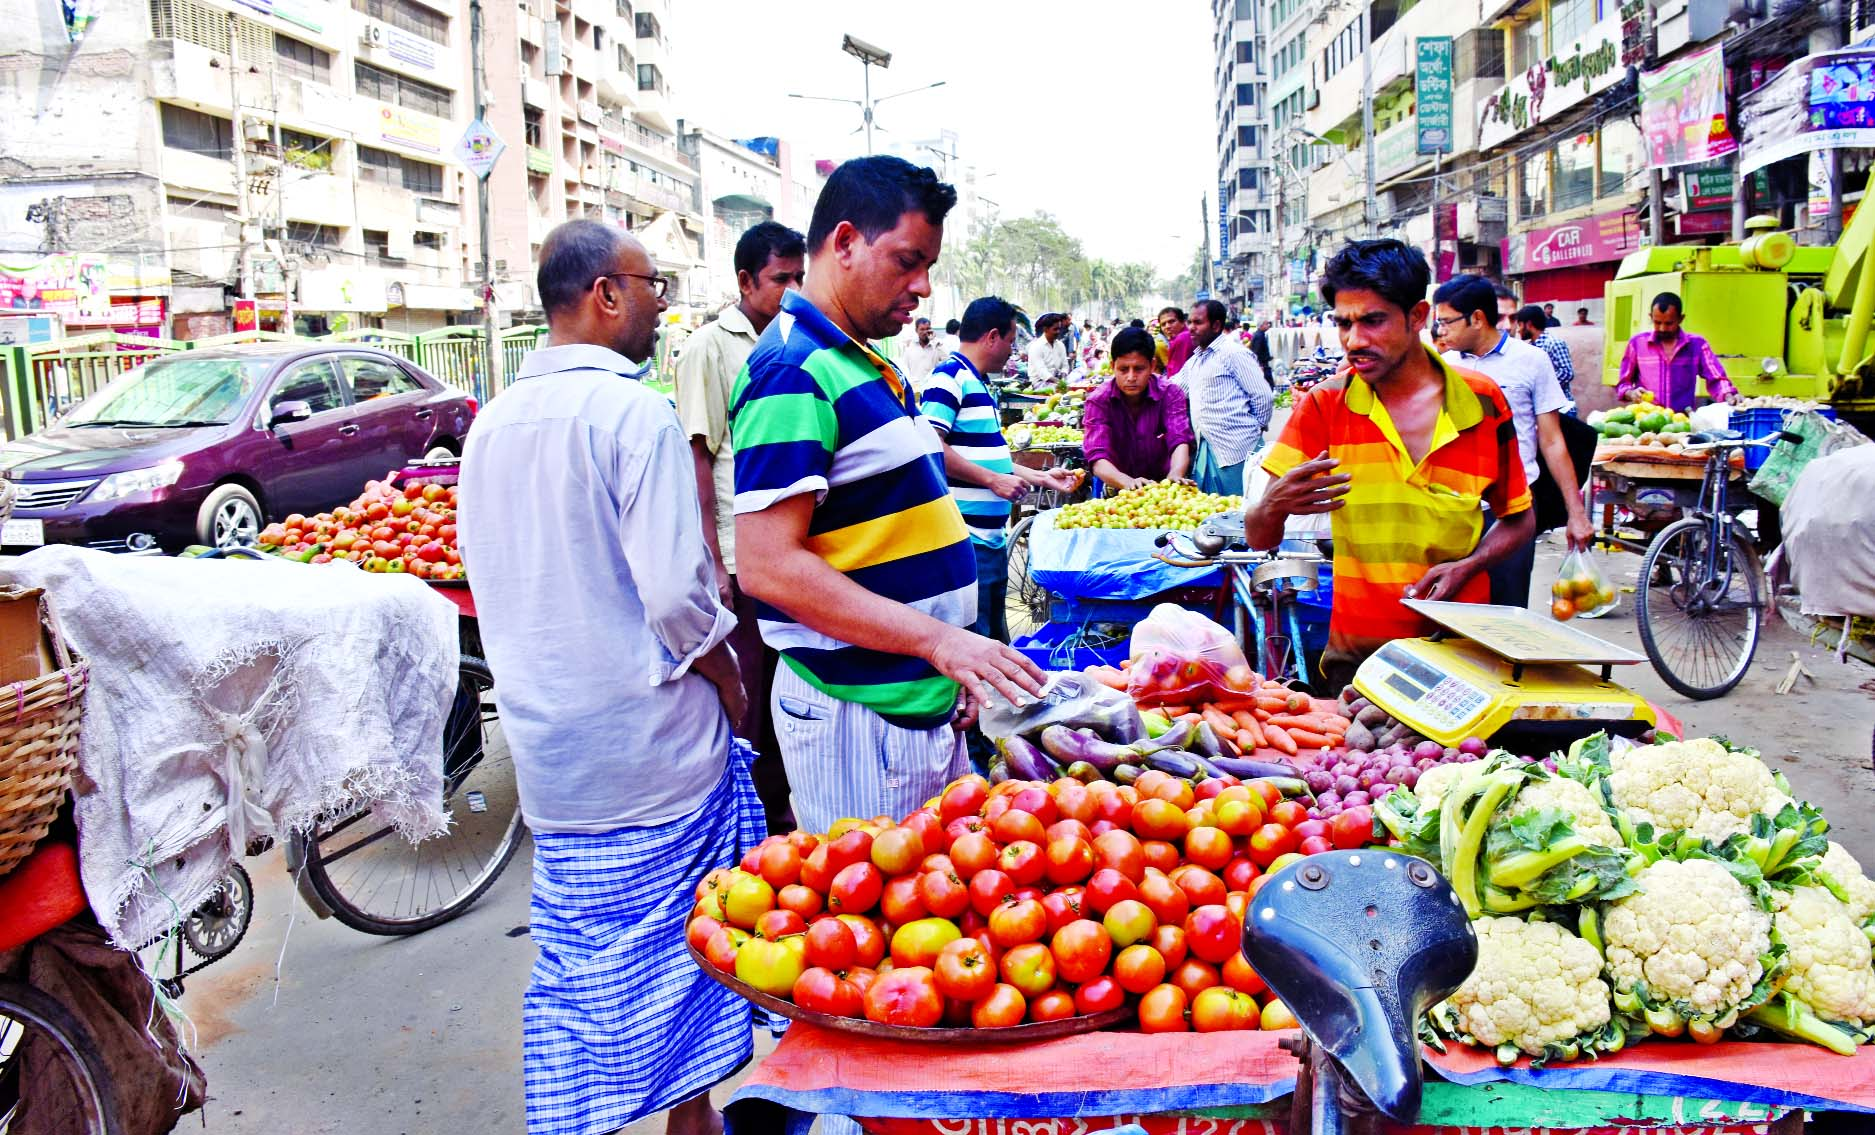 Main thoroughfare in city is being occupied illegally by the vendors of vegetables and fruits in name of holiday market causing sufferings to commuters and pedestrians. This photo was taken from Naya Paltan area on Friday.